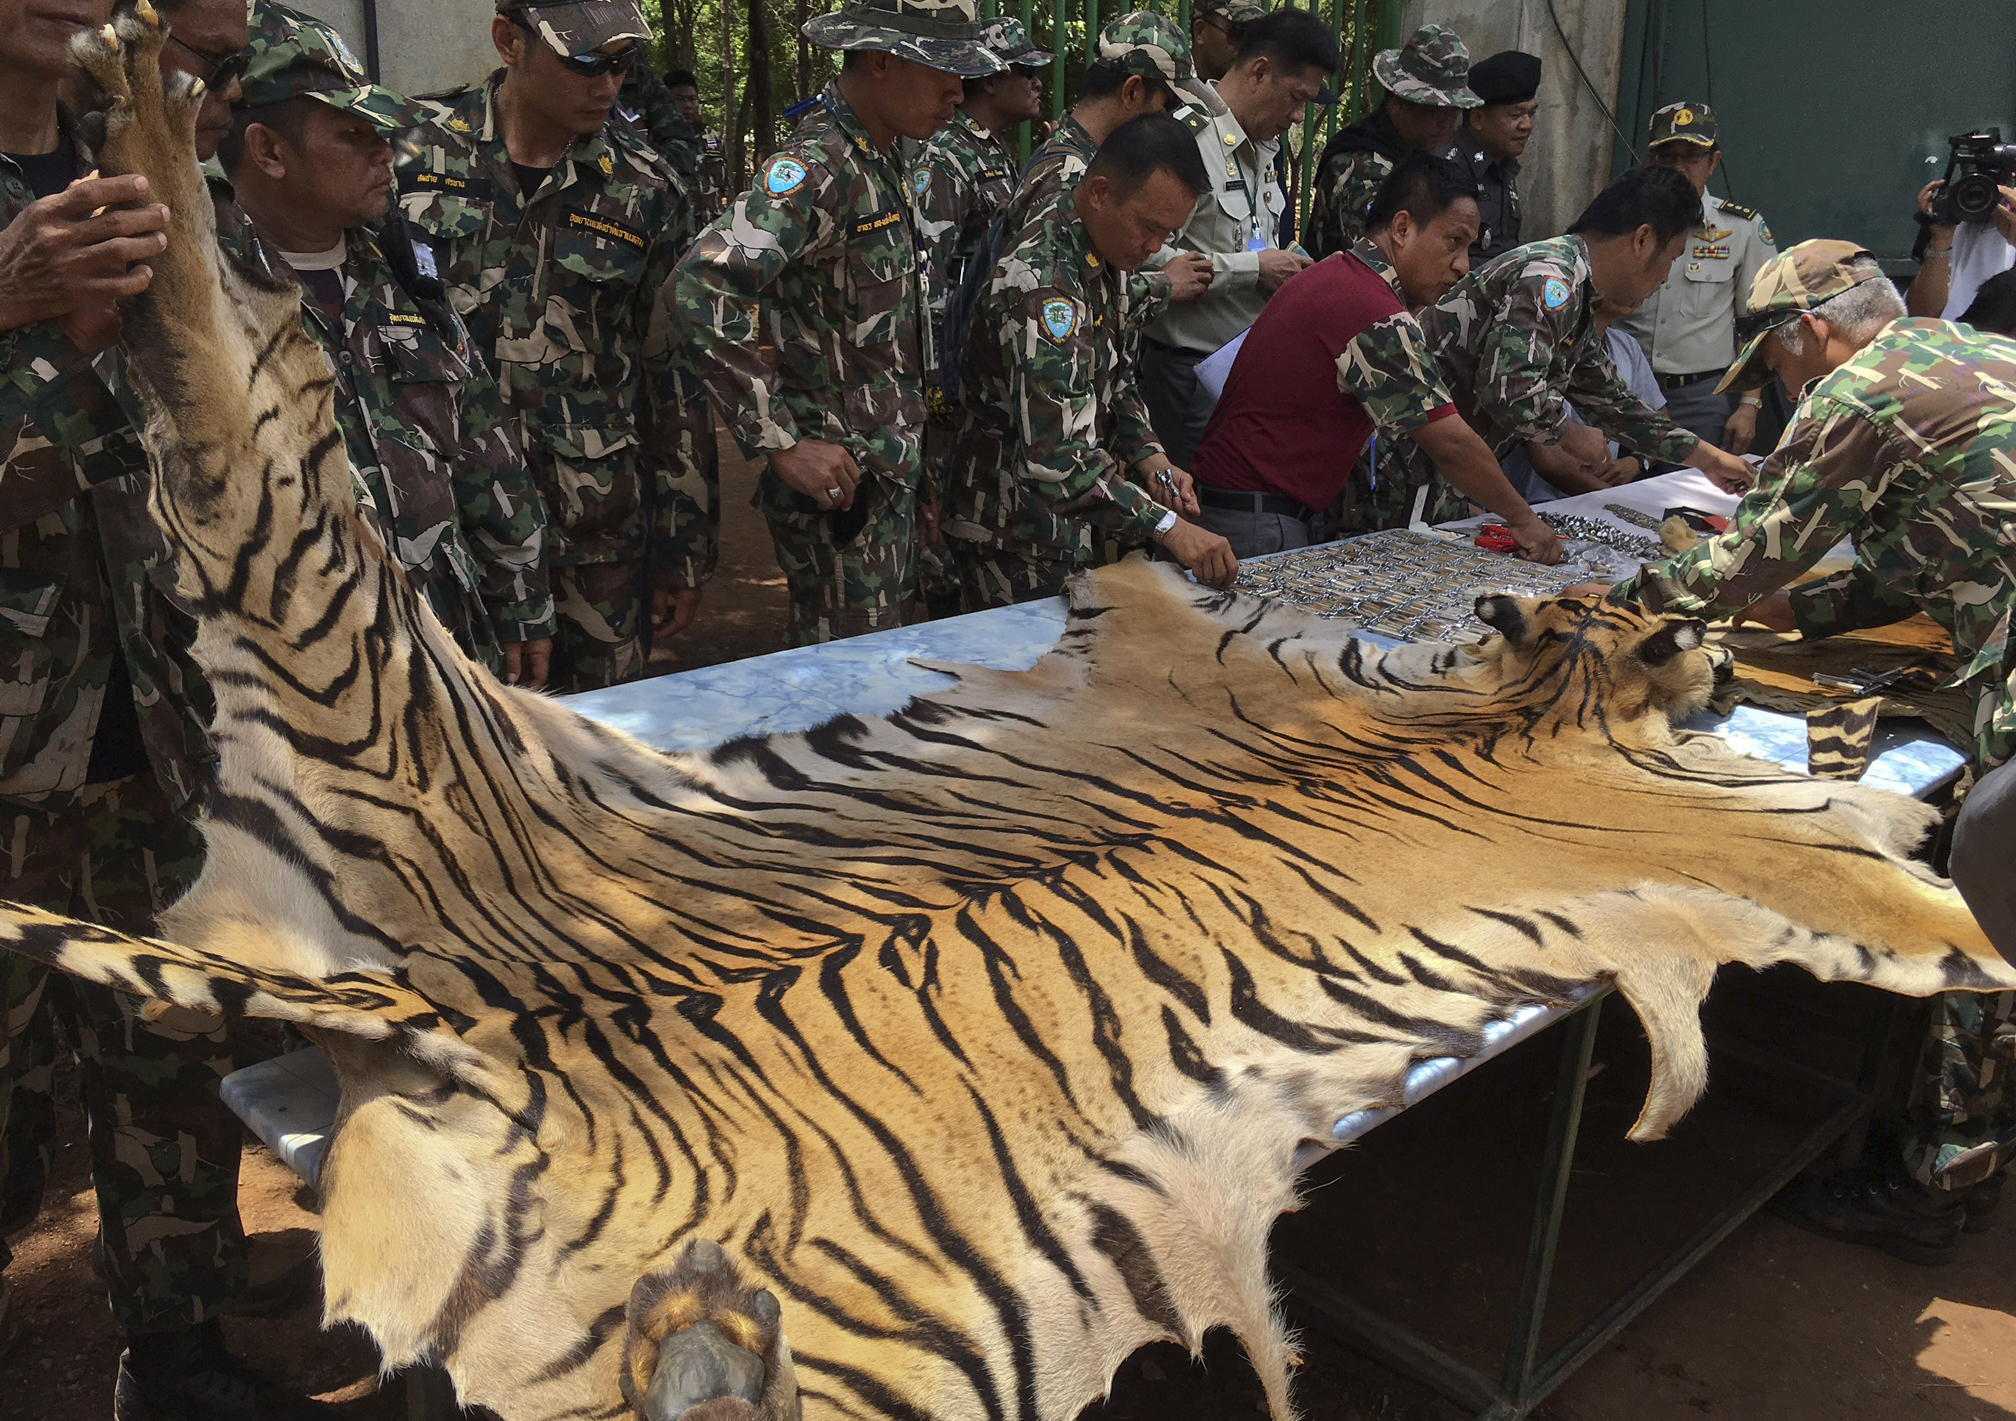 National Parks and Wildlife officers examine the skin of a tiger at the  Tiger Temple,  in Saiyok district in Kanchanaburi province, west of Bangkok, Thailand,  June 2, 2016.